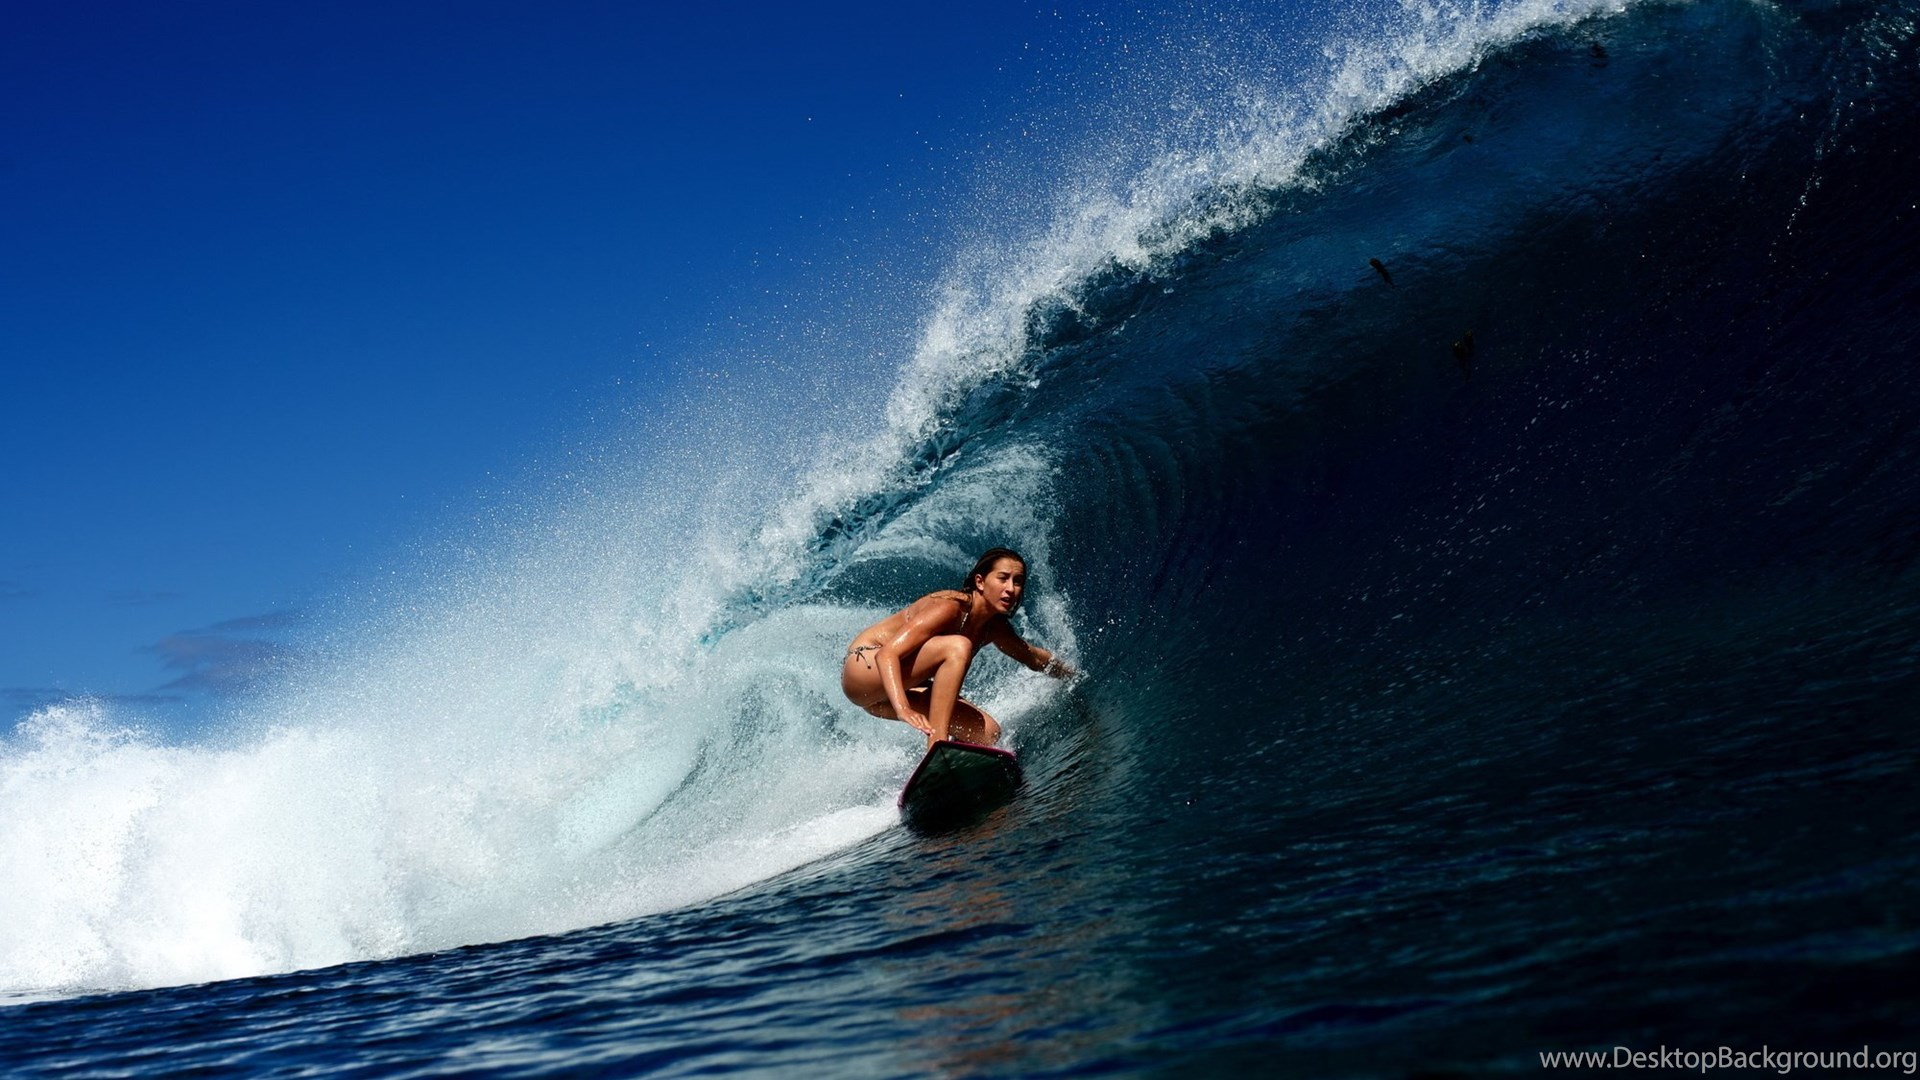 Wave Surfing Girl Surfing Ocean Bikini Sexy Babe Wallpapers